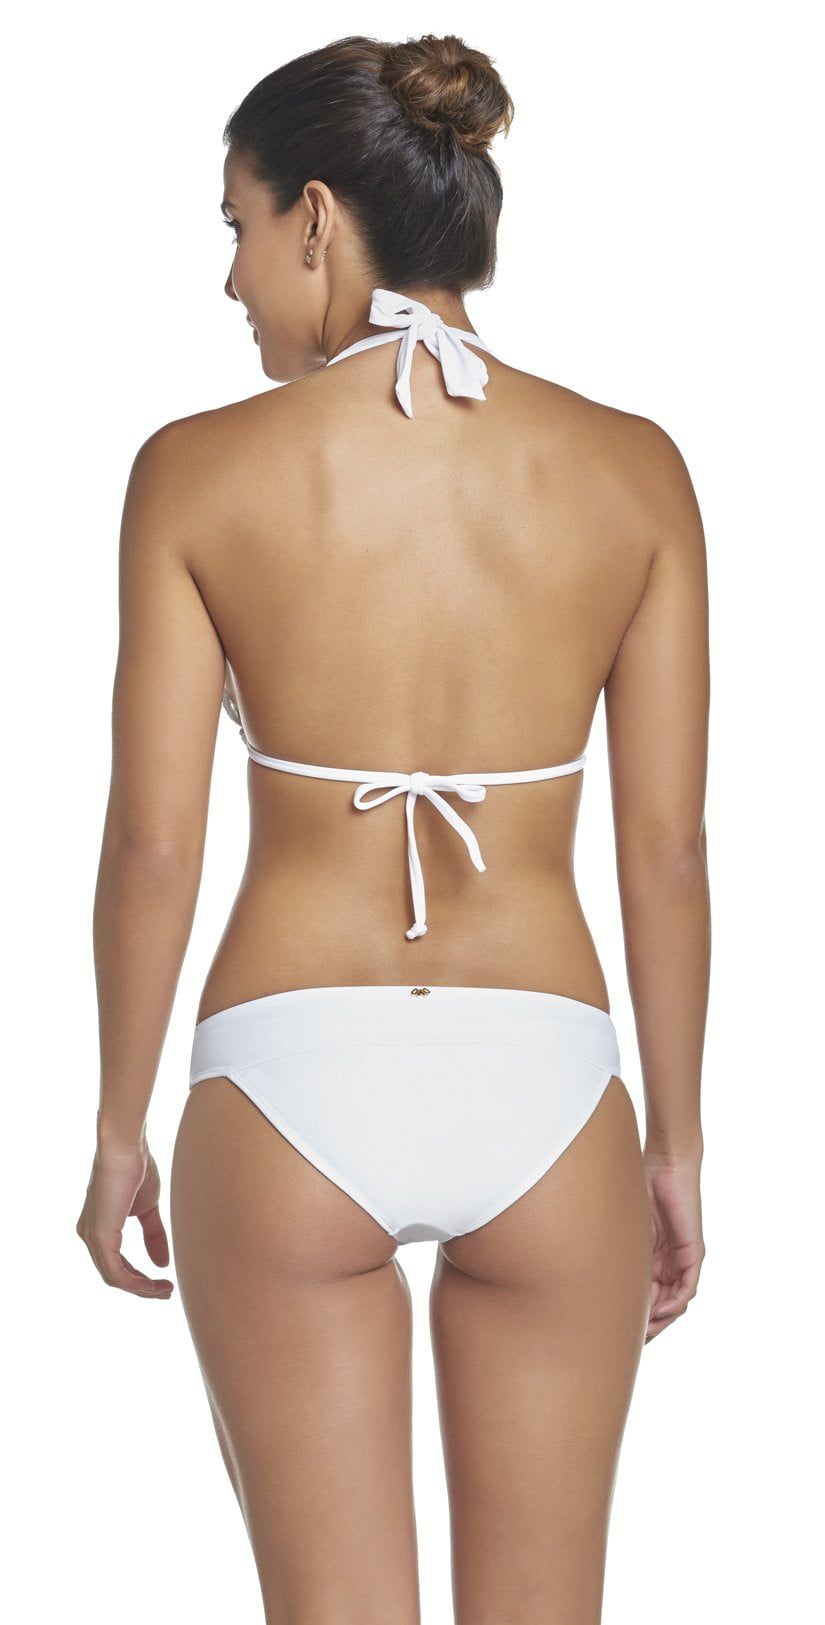 PilyQ Water Lily Lace Banded Full Bikini Bottom in White WAT-222Tback studio